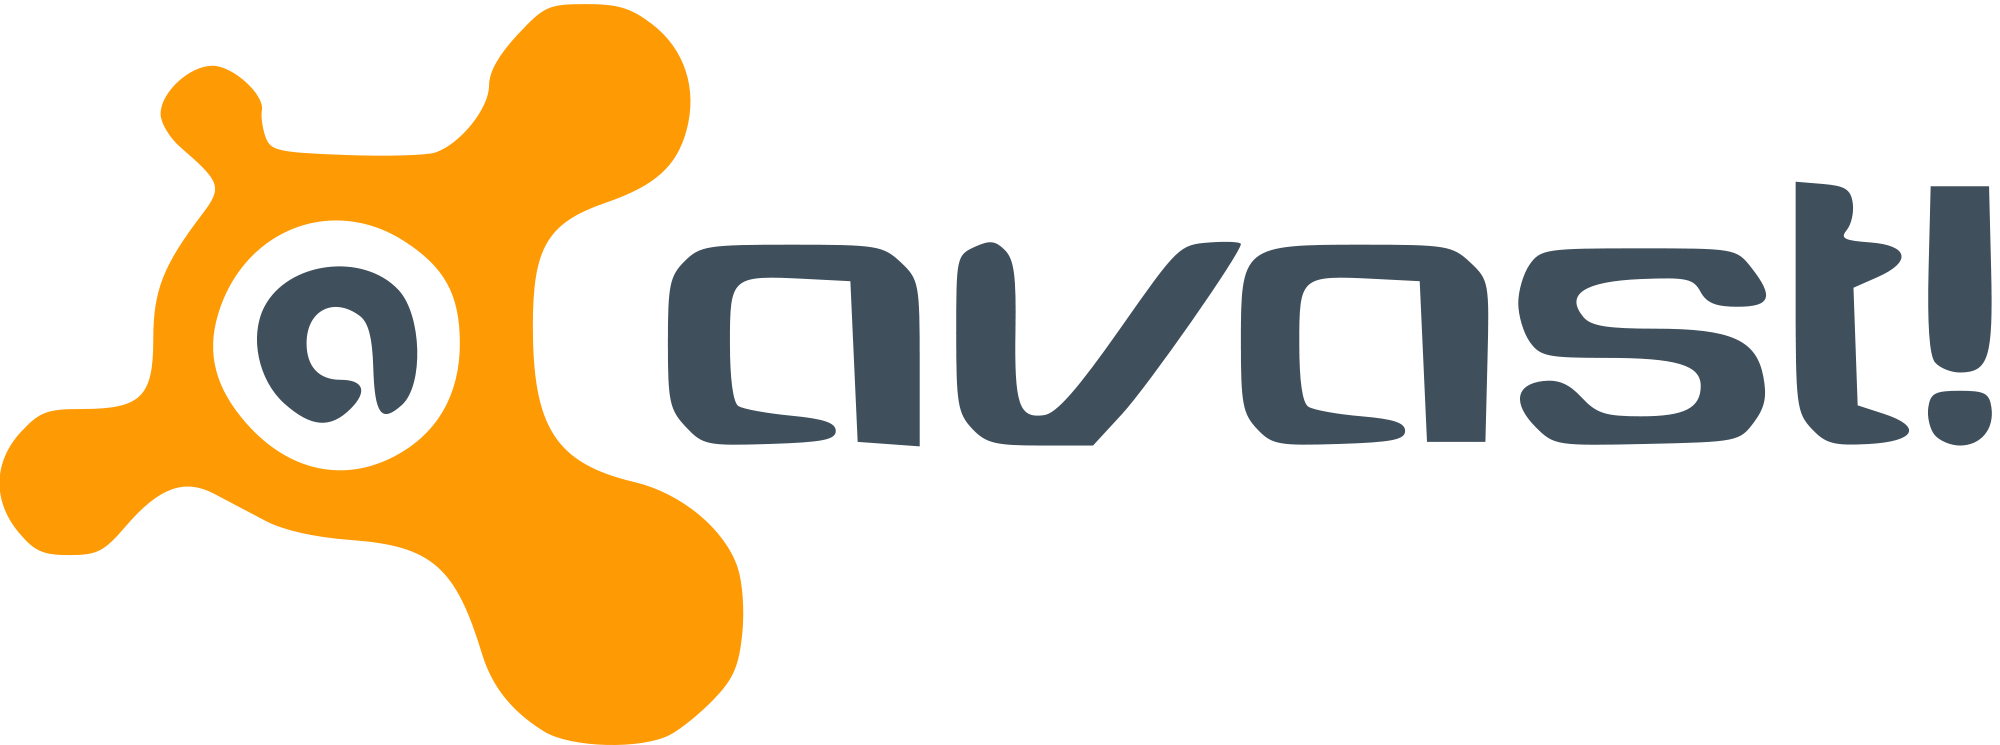 Come escludere file e cartelle dalla scansione di Avast